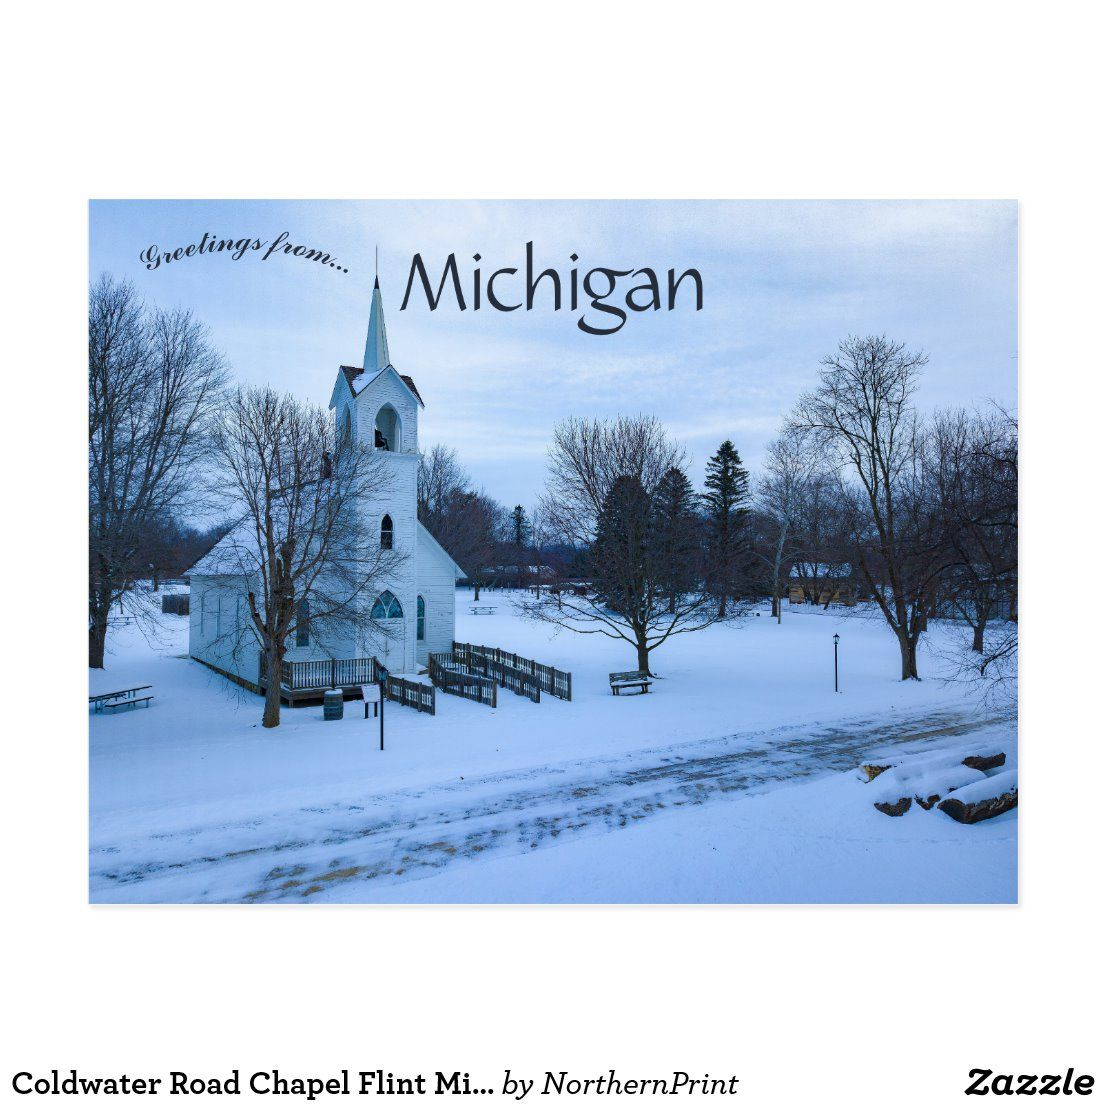 Coldwater Road Chapel Flint Michigan Postcard Zazzle Ca Flint Michigan Chapel Michigan